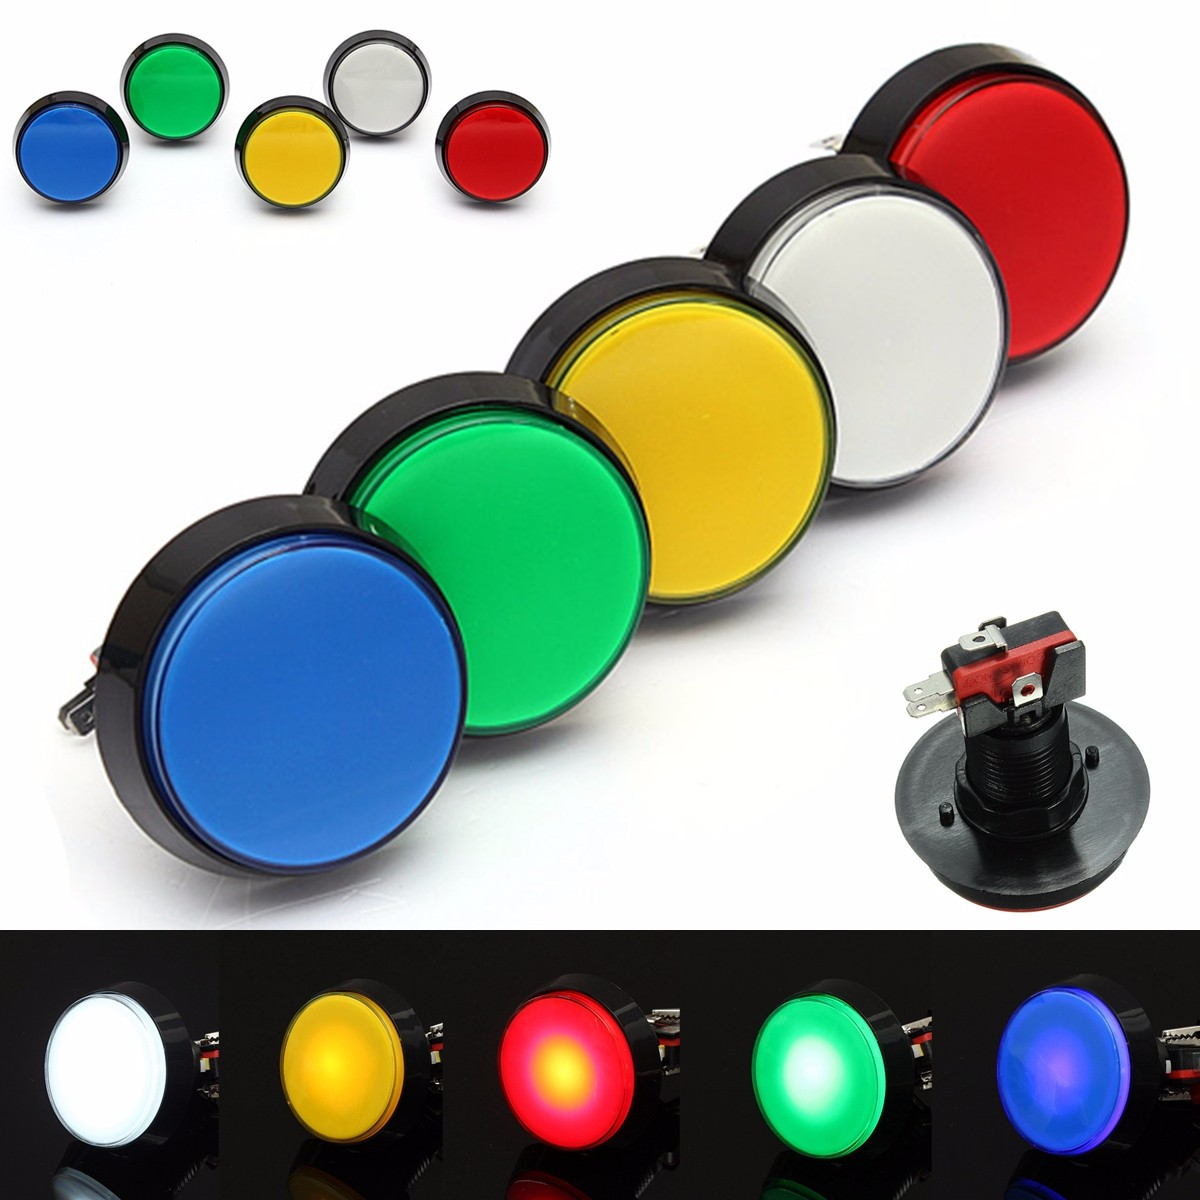 Arcade Button 5 Colors LED Light Lamp 60MM 45MM Big Round Arcade Video Game Player Push Button Switch(China)